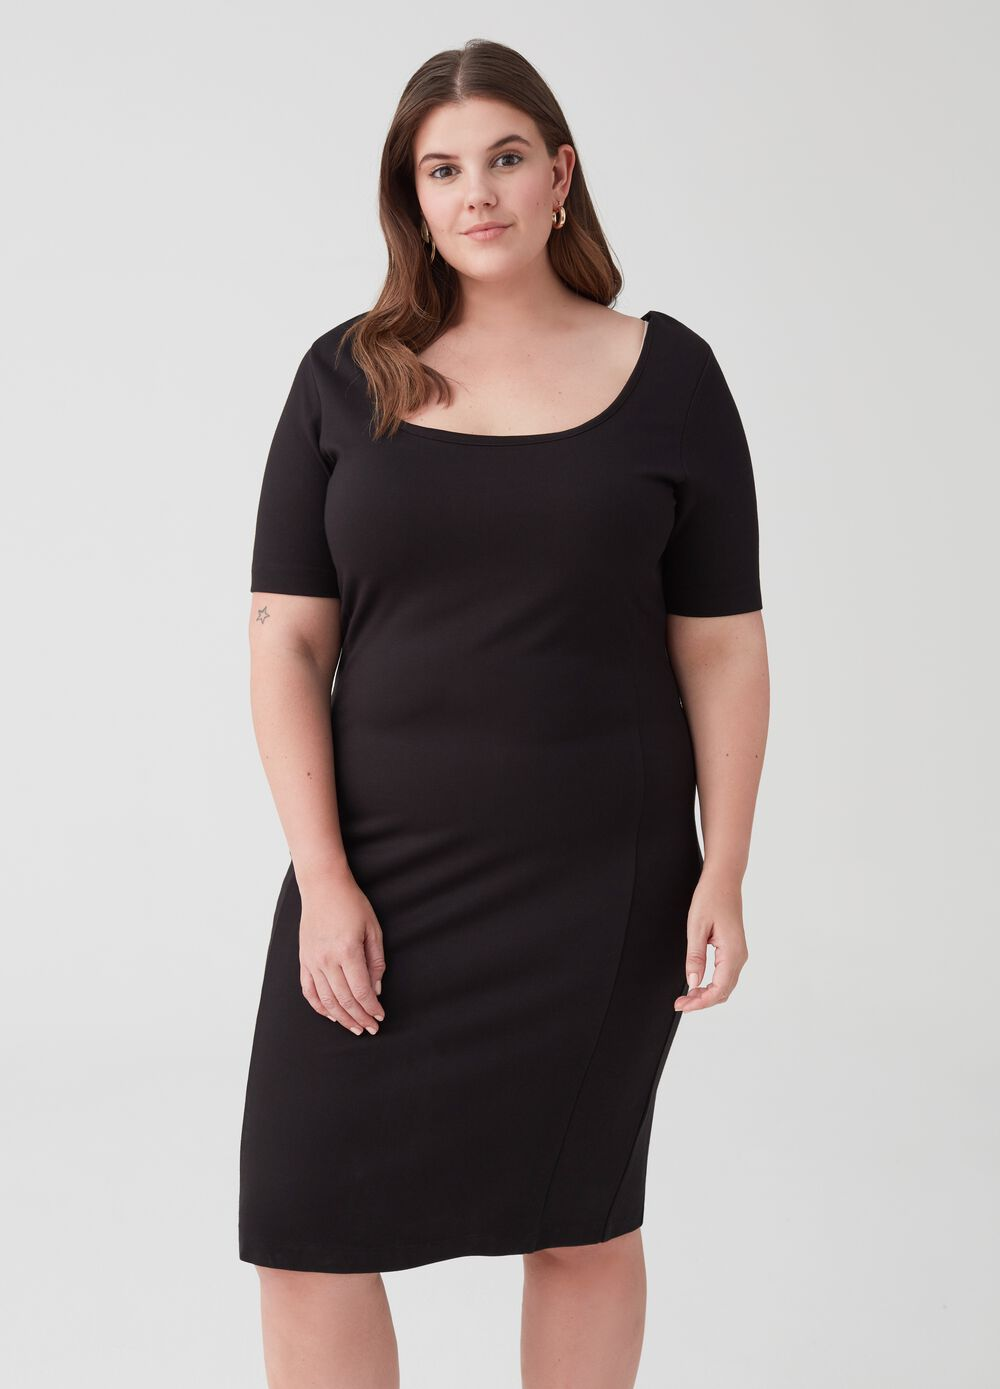 Curvy stretch dress with short sleeves